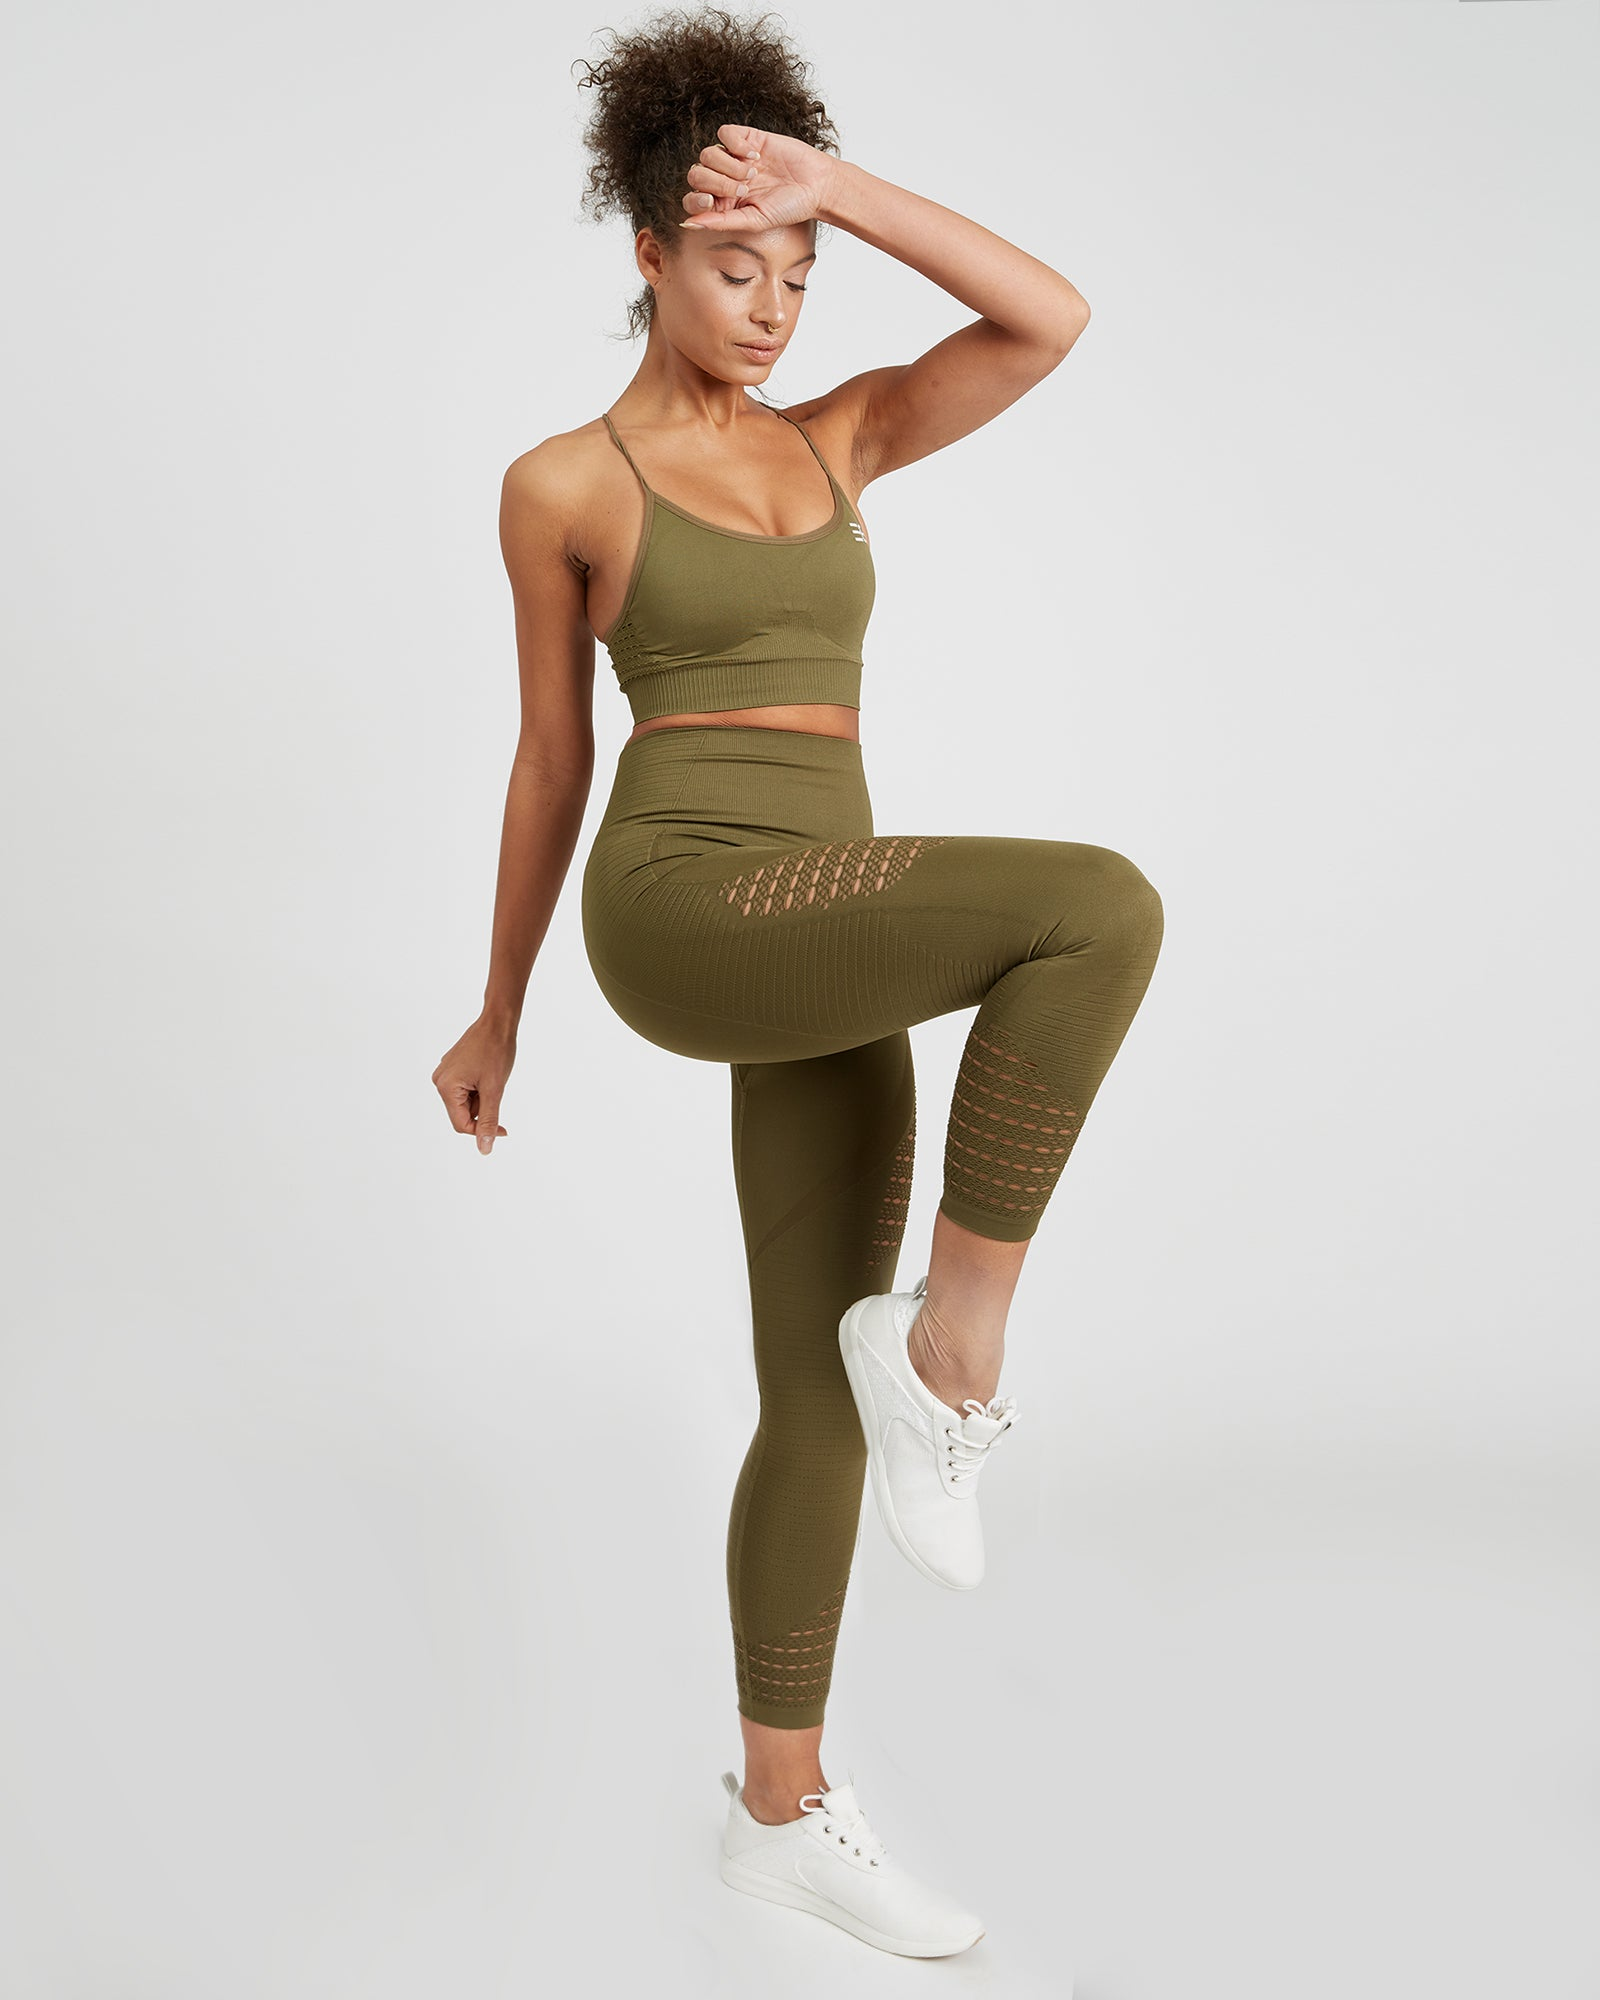 army_seamless_set_women